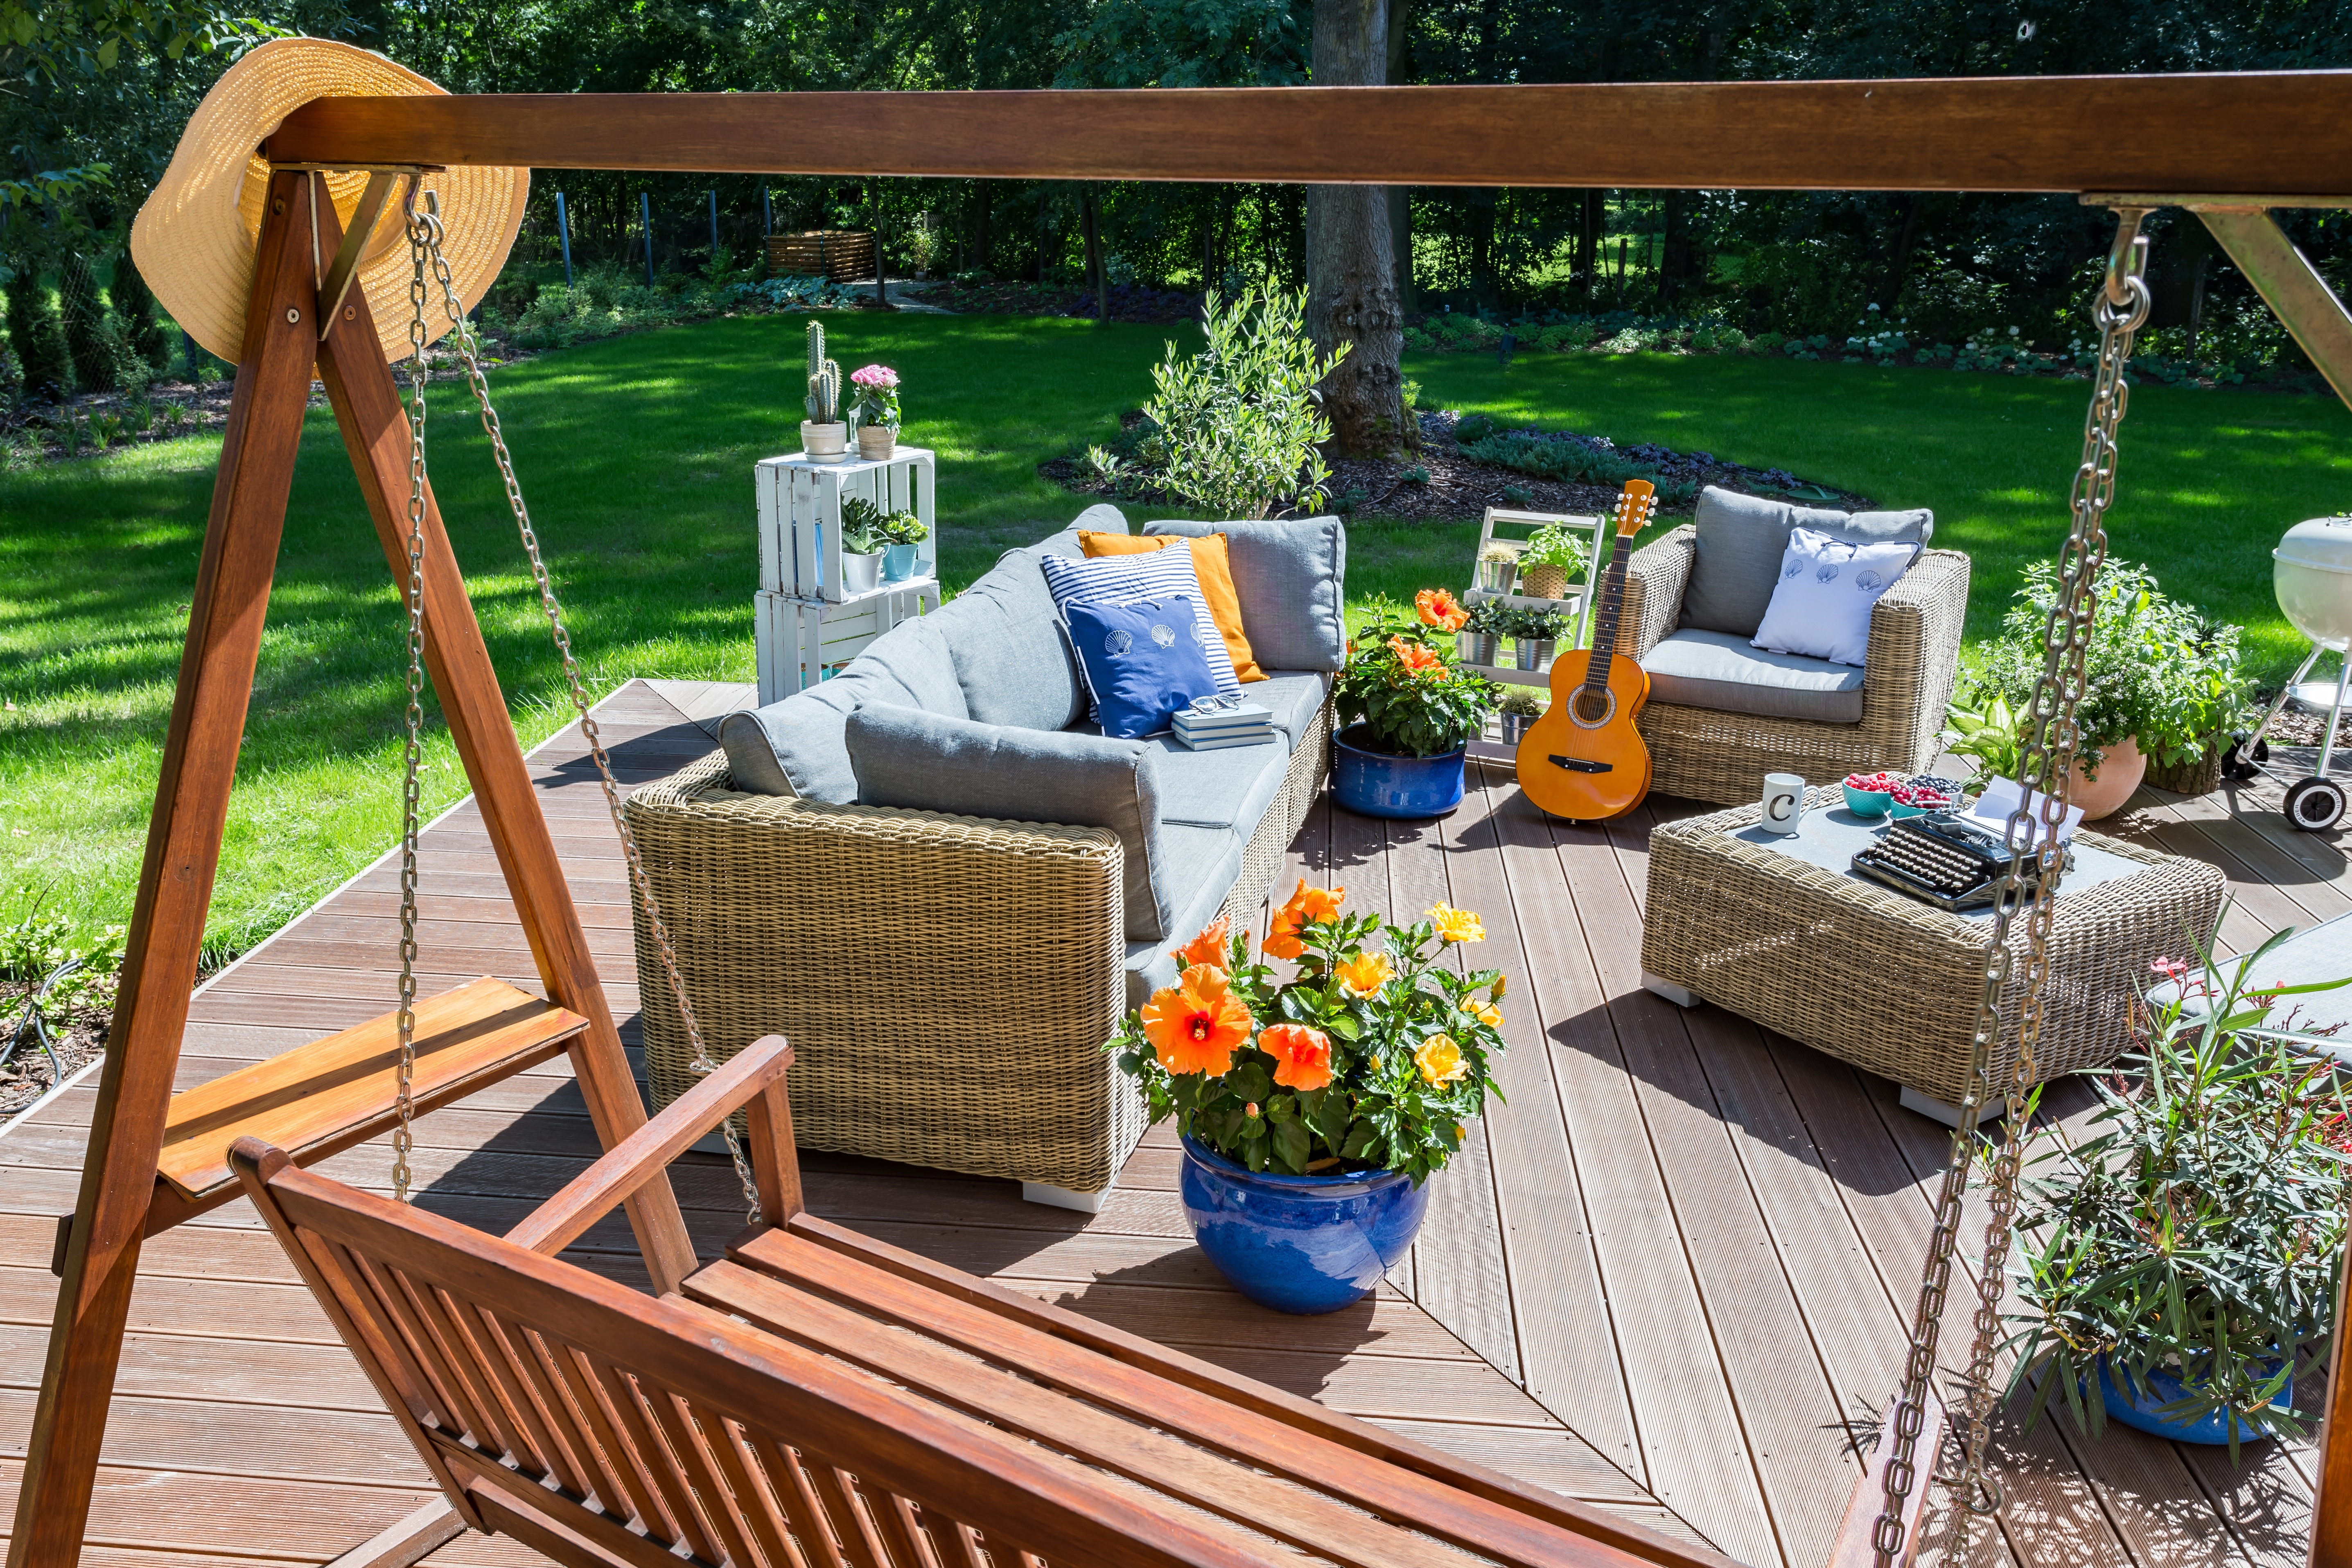 Is Your Backyard Ready for Summer?